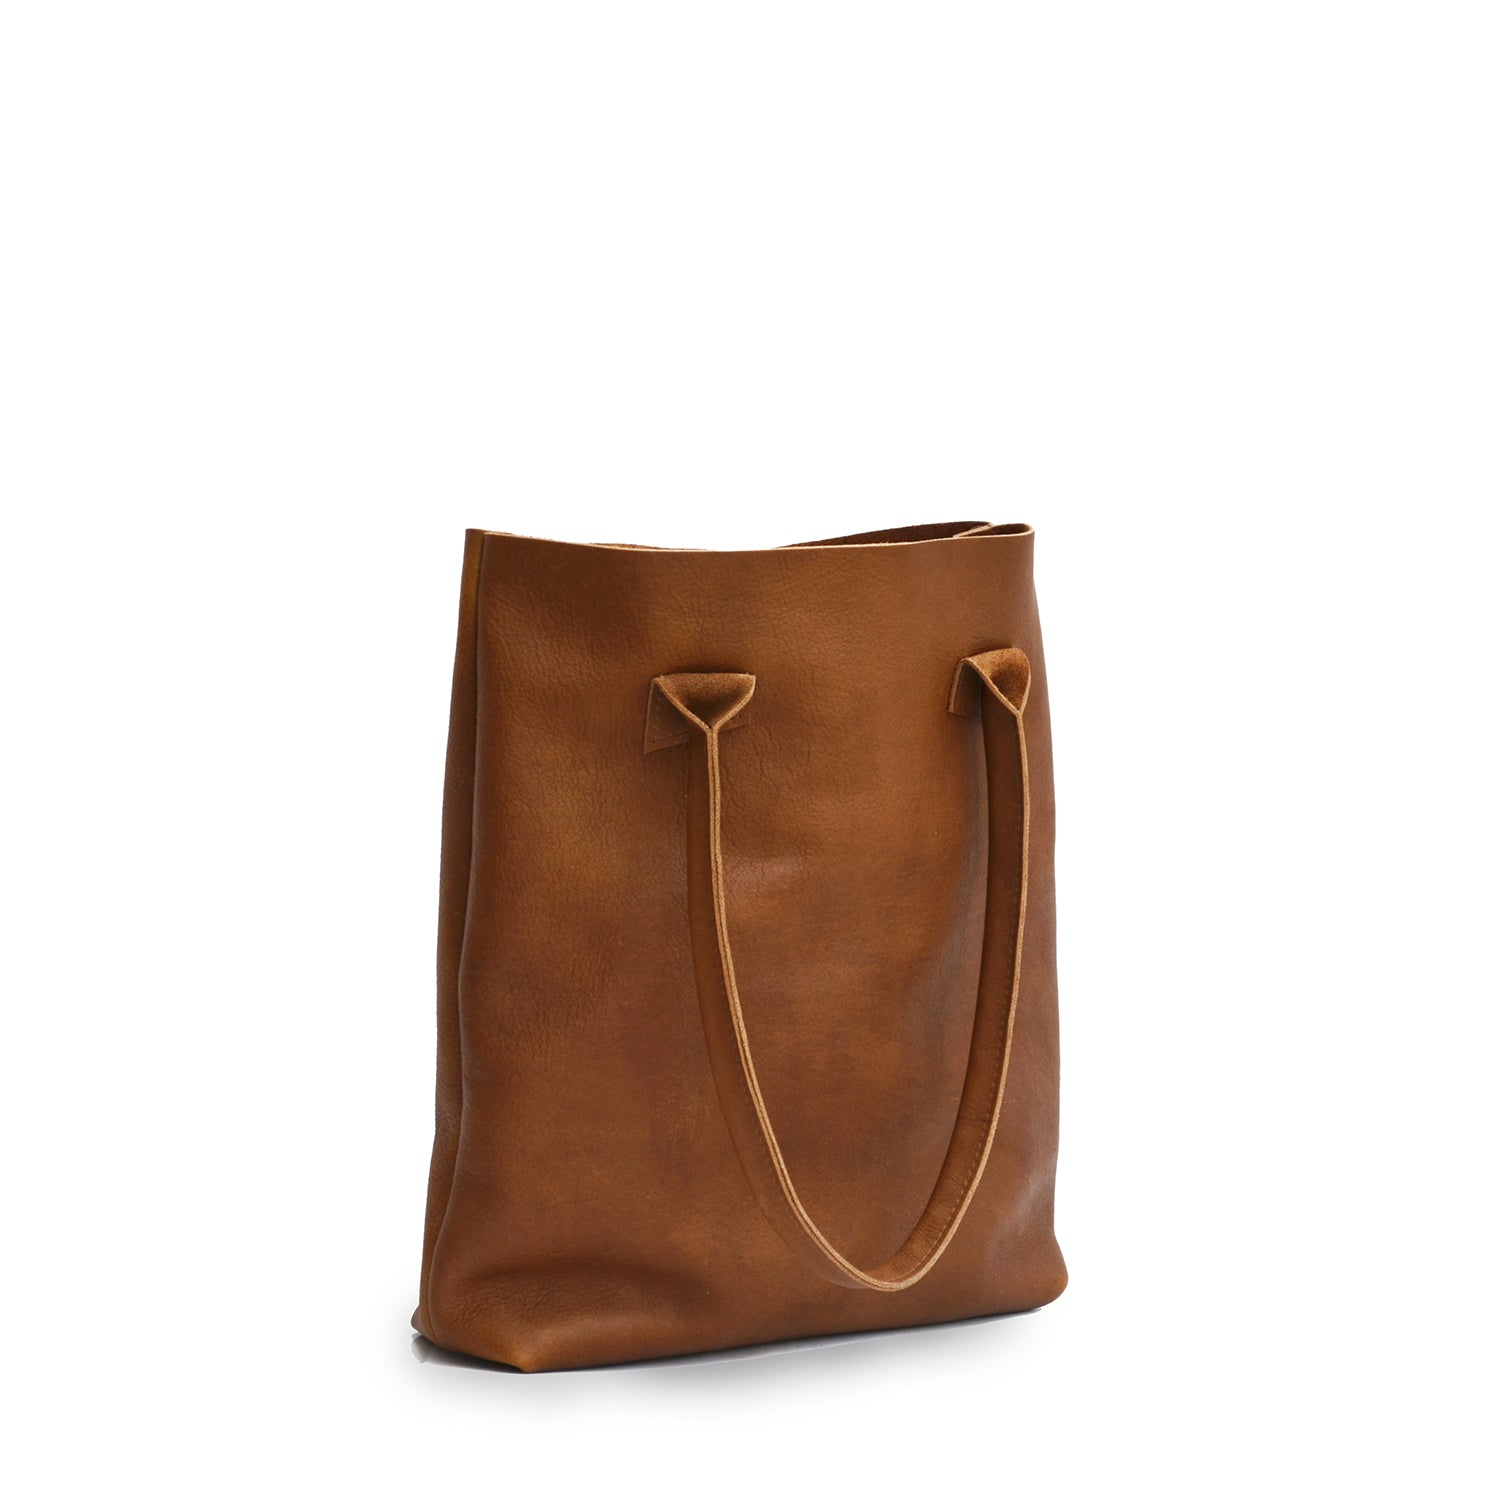 Cognac Totebag - Atelier Collection